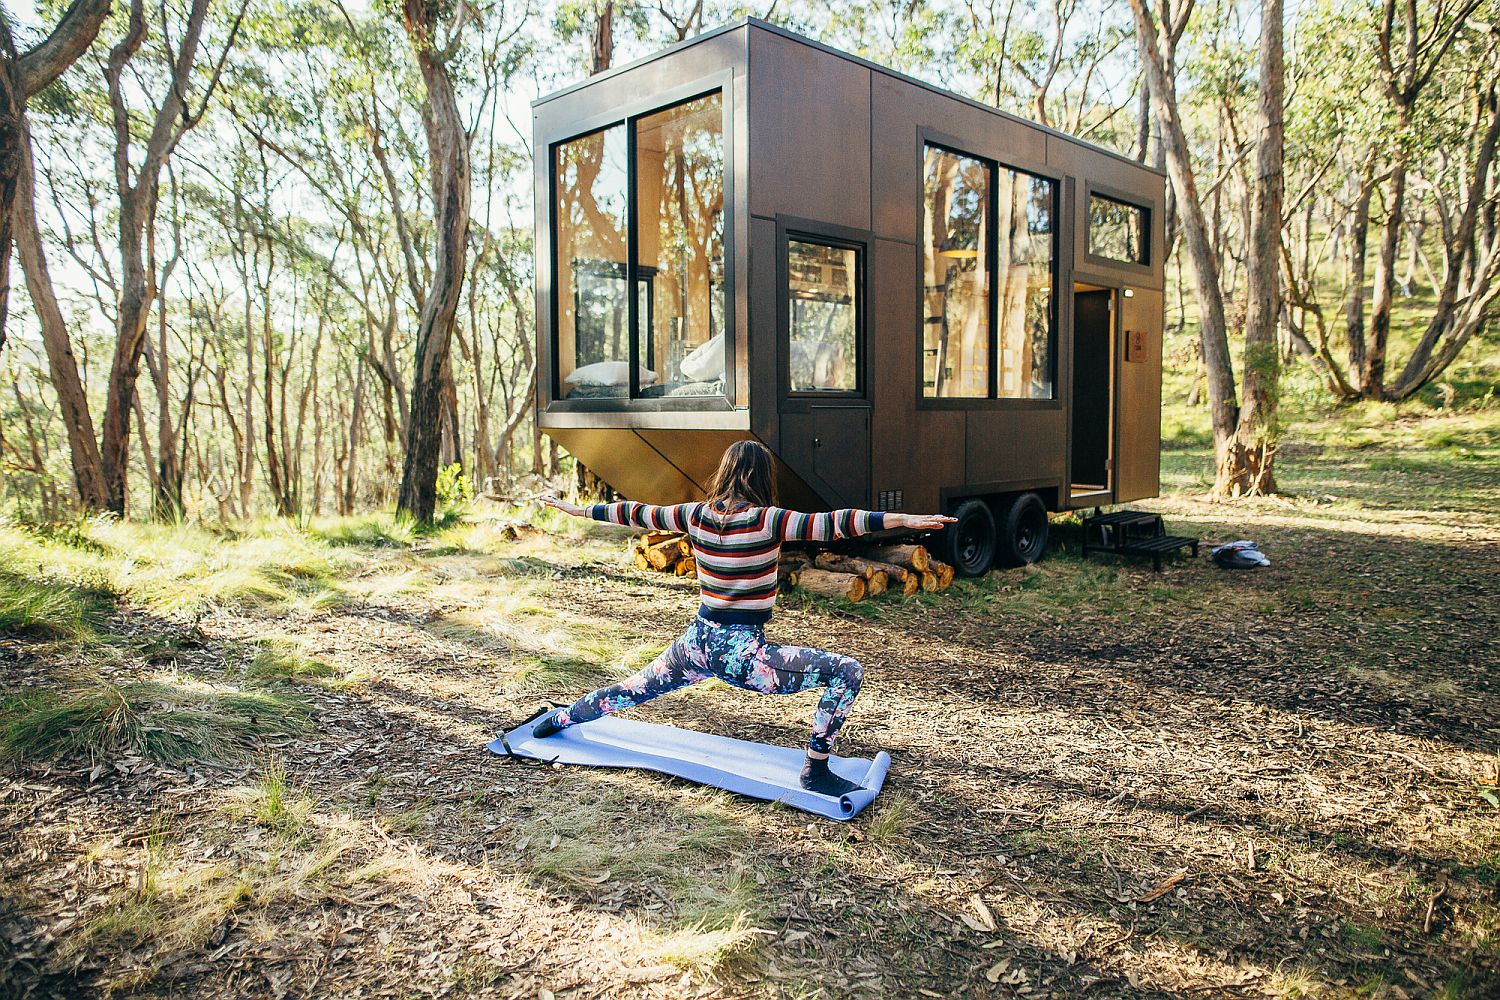 Australian tiny house that is sustainable and off-grid